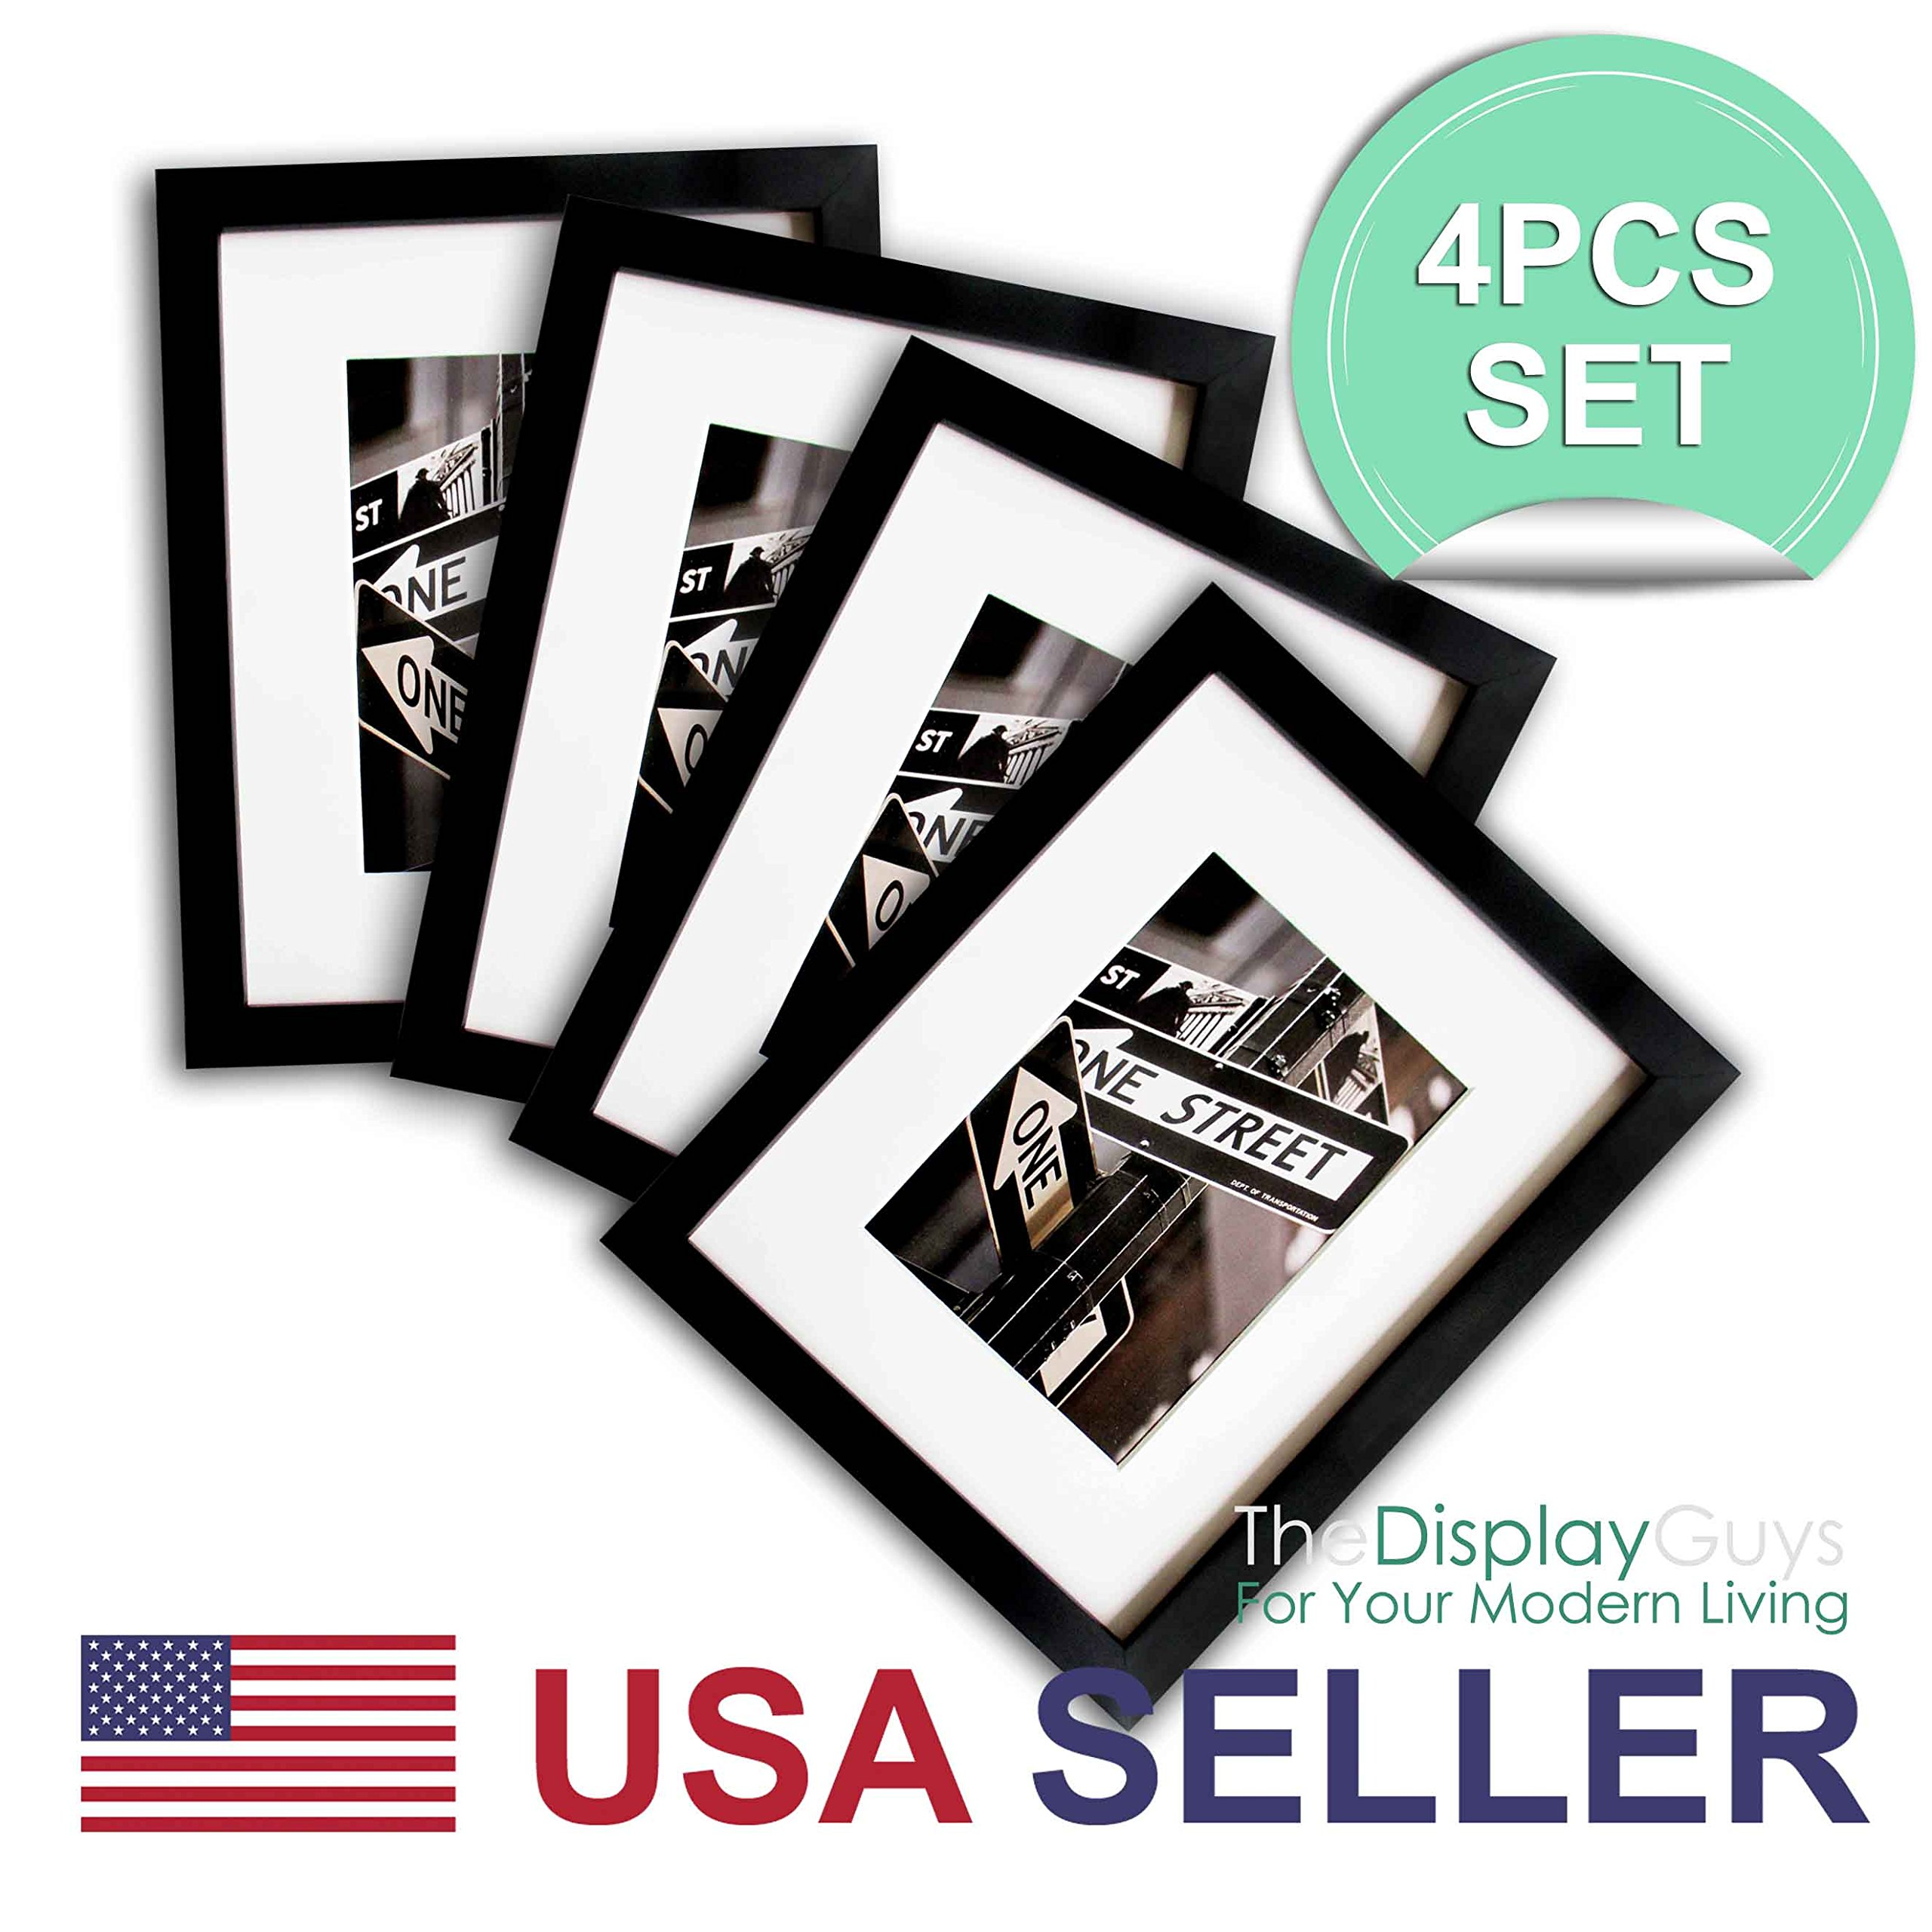 The Display Guys~ 4 Sets 11x14 Sets Matte Black Solid Pine Wood Photo Frame, Tempered Glass, Luxury Made Affordable, with White Core Mat Boards for 8x10 Picture + Collage Mat Boards for 2-5x7 Pictures by THE DISPLAY GUYS